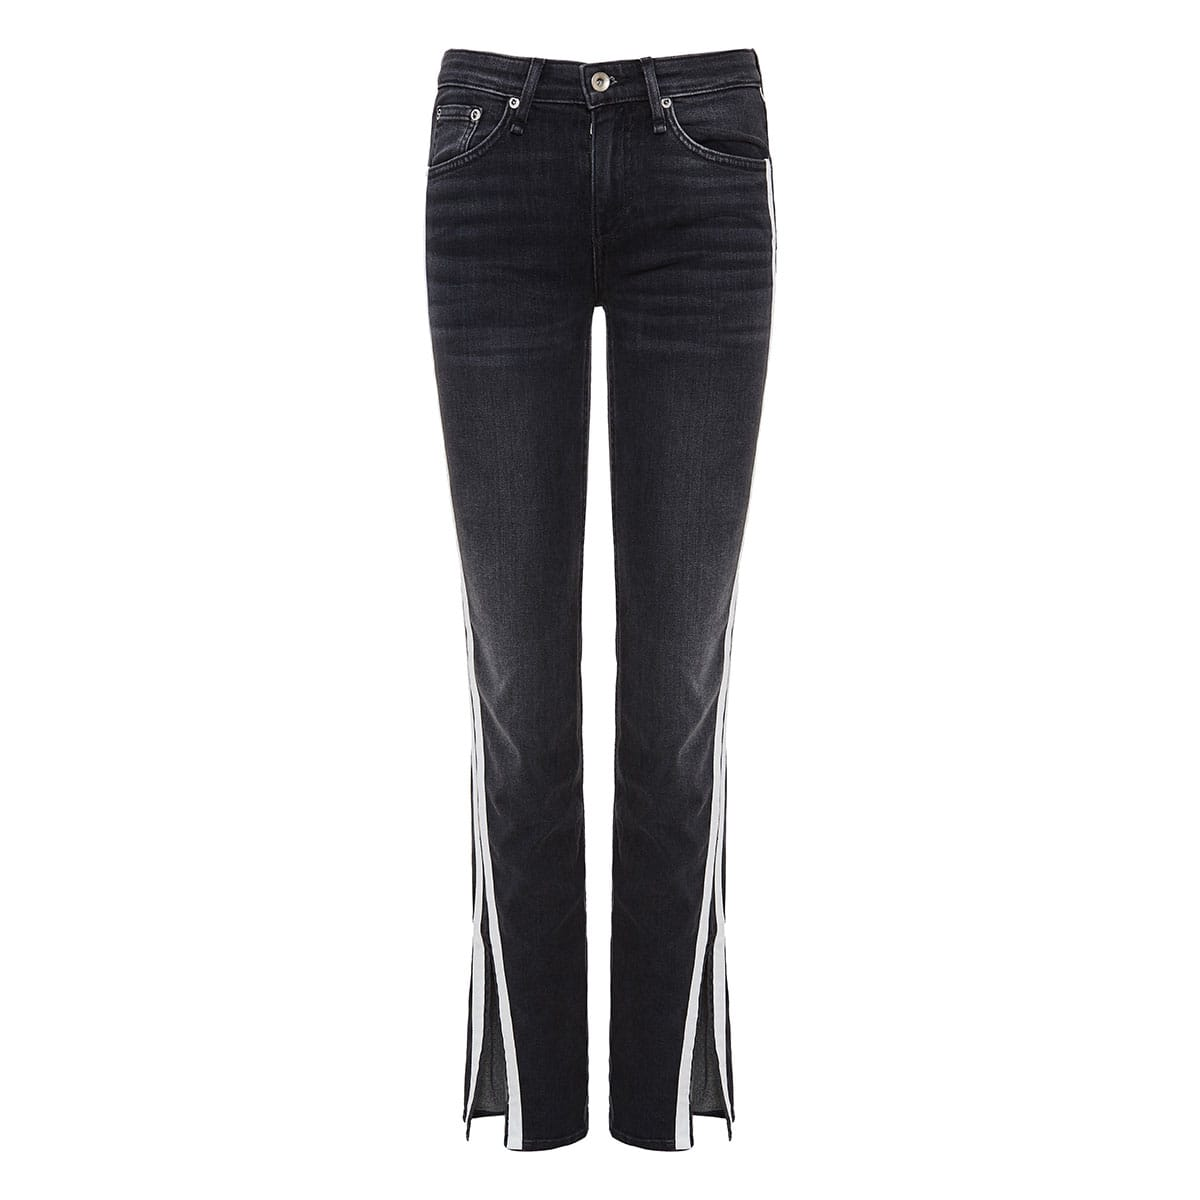 Cate side-striped jeans with slits